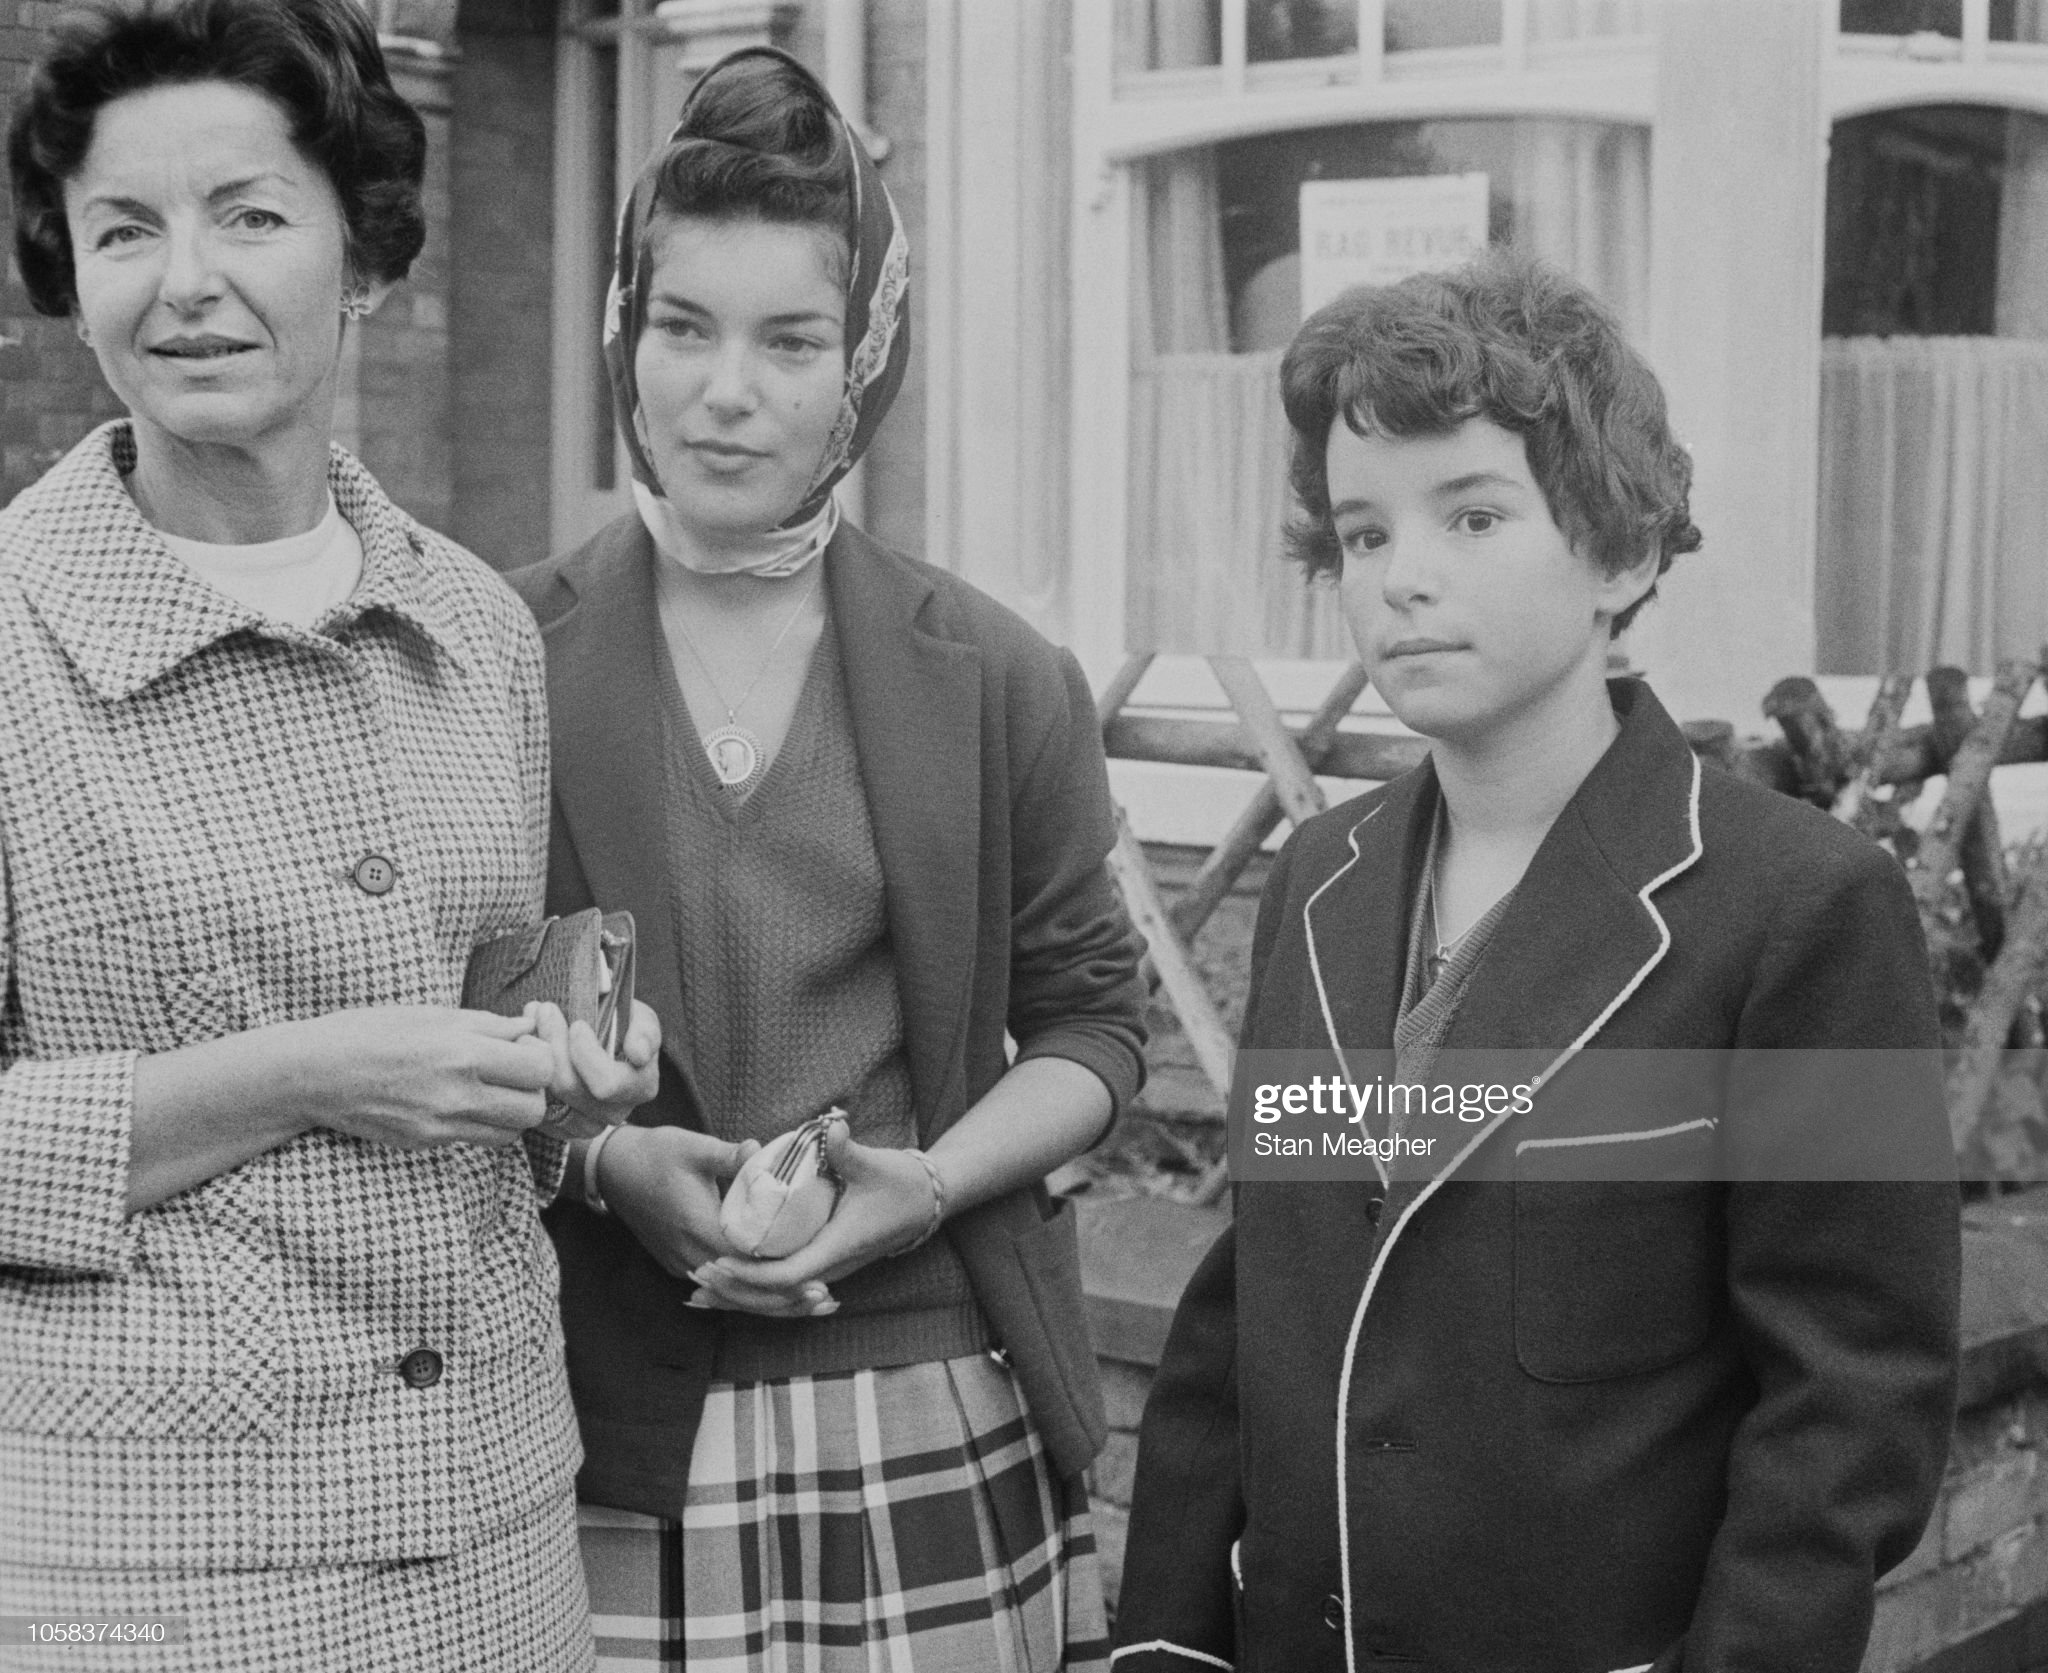 princess-antoinette-baroness-of-massy-with-her-two-daughters-de-and-picture-id1058374340